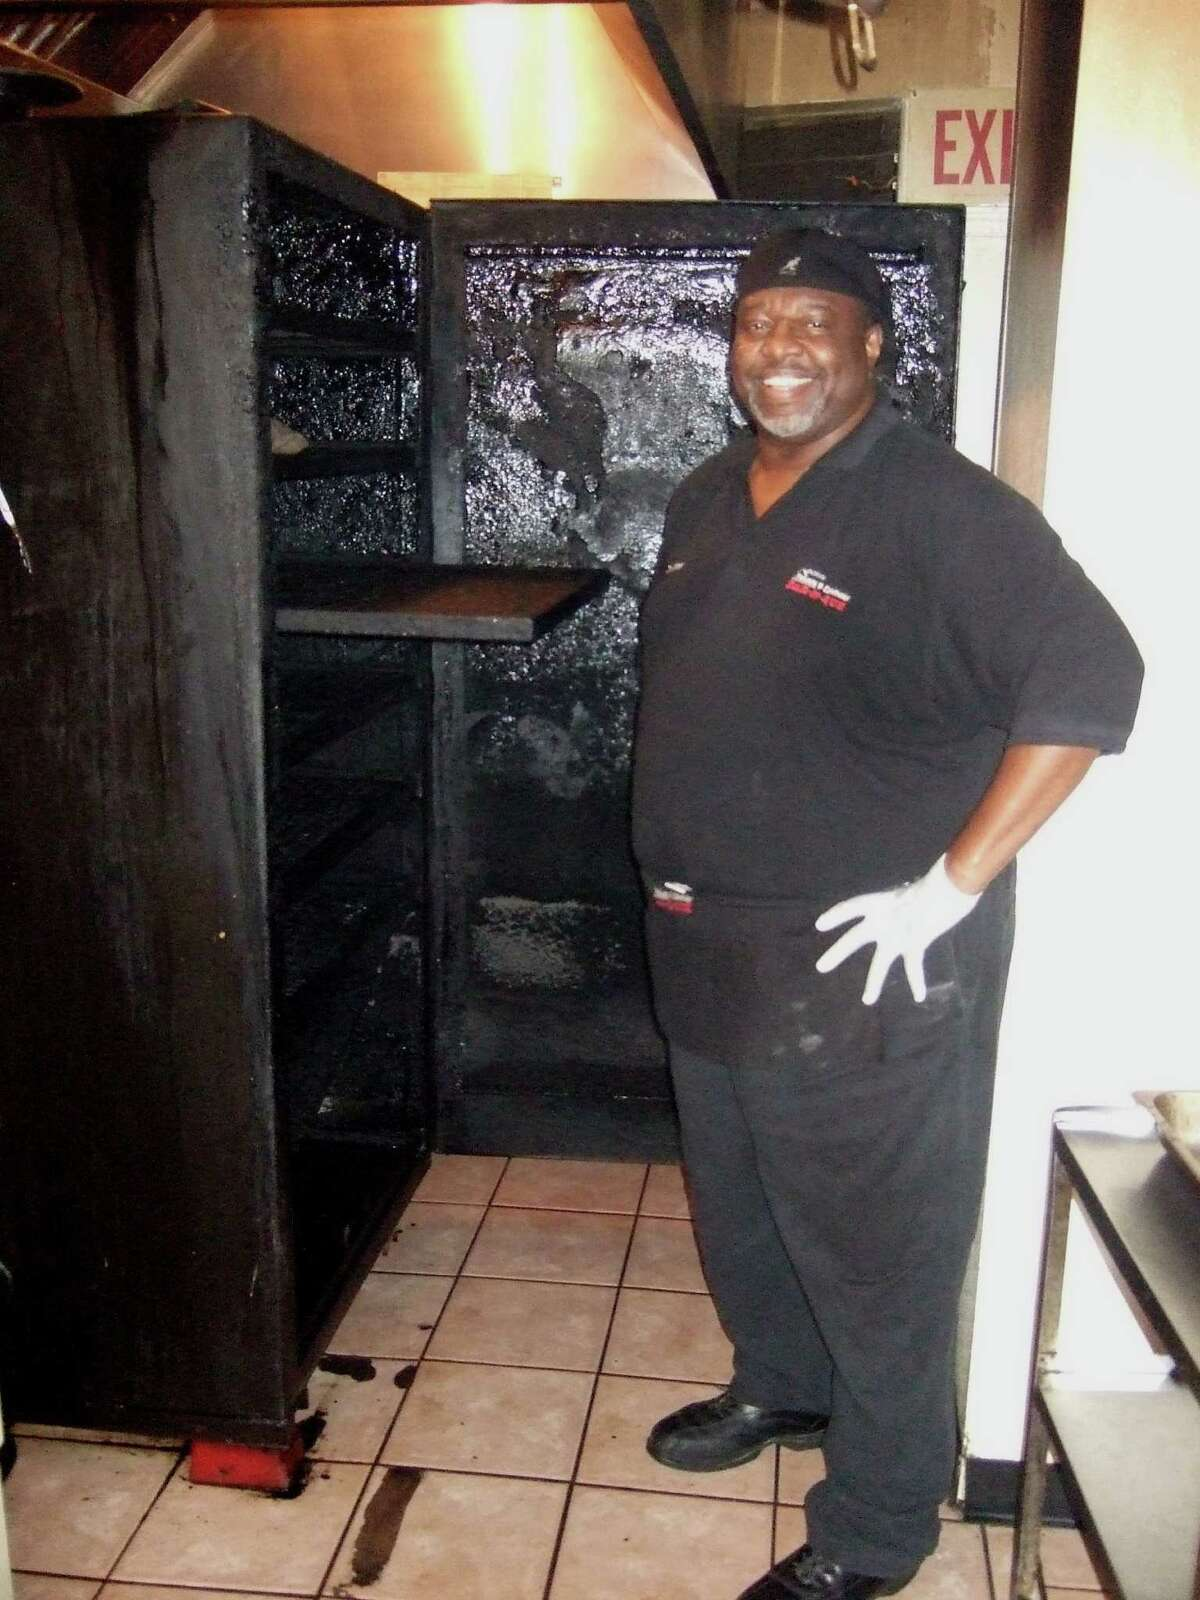 Clarence Pierson is the owner of Pierson's BBQ. photo by J.C. Reid